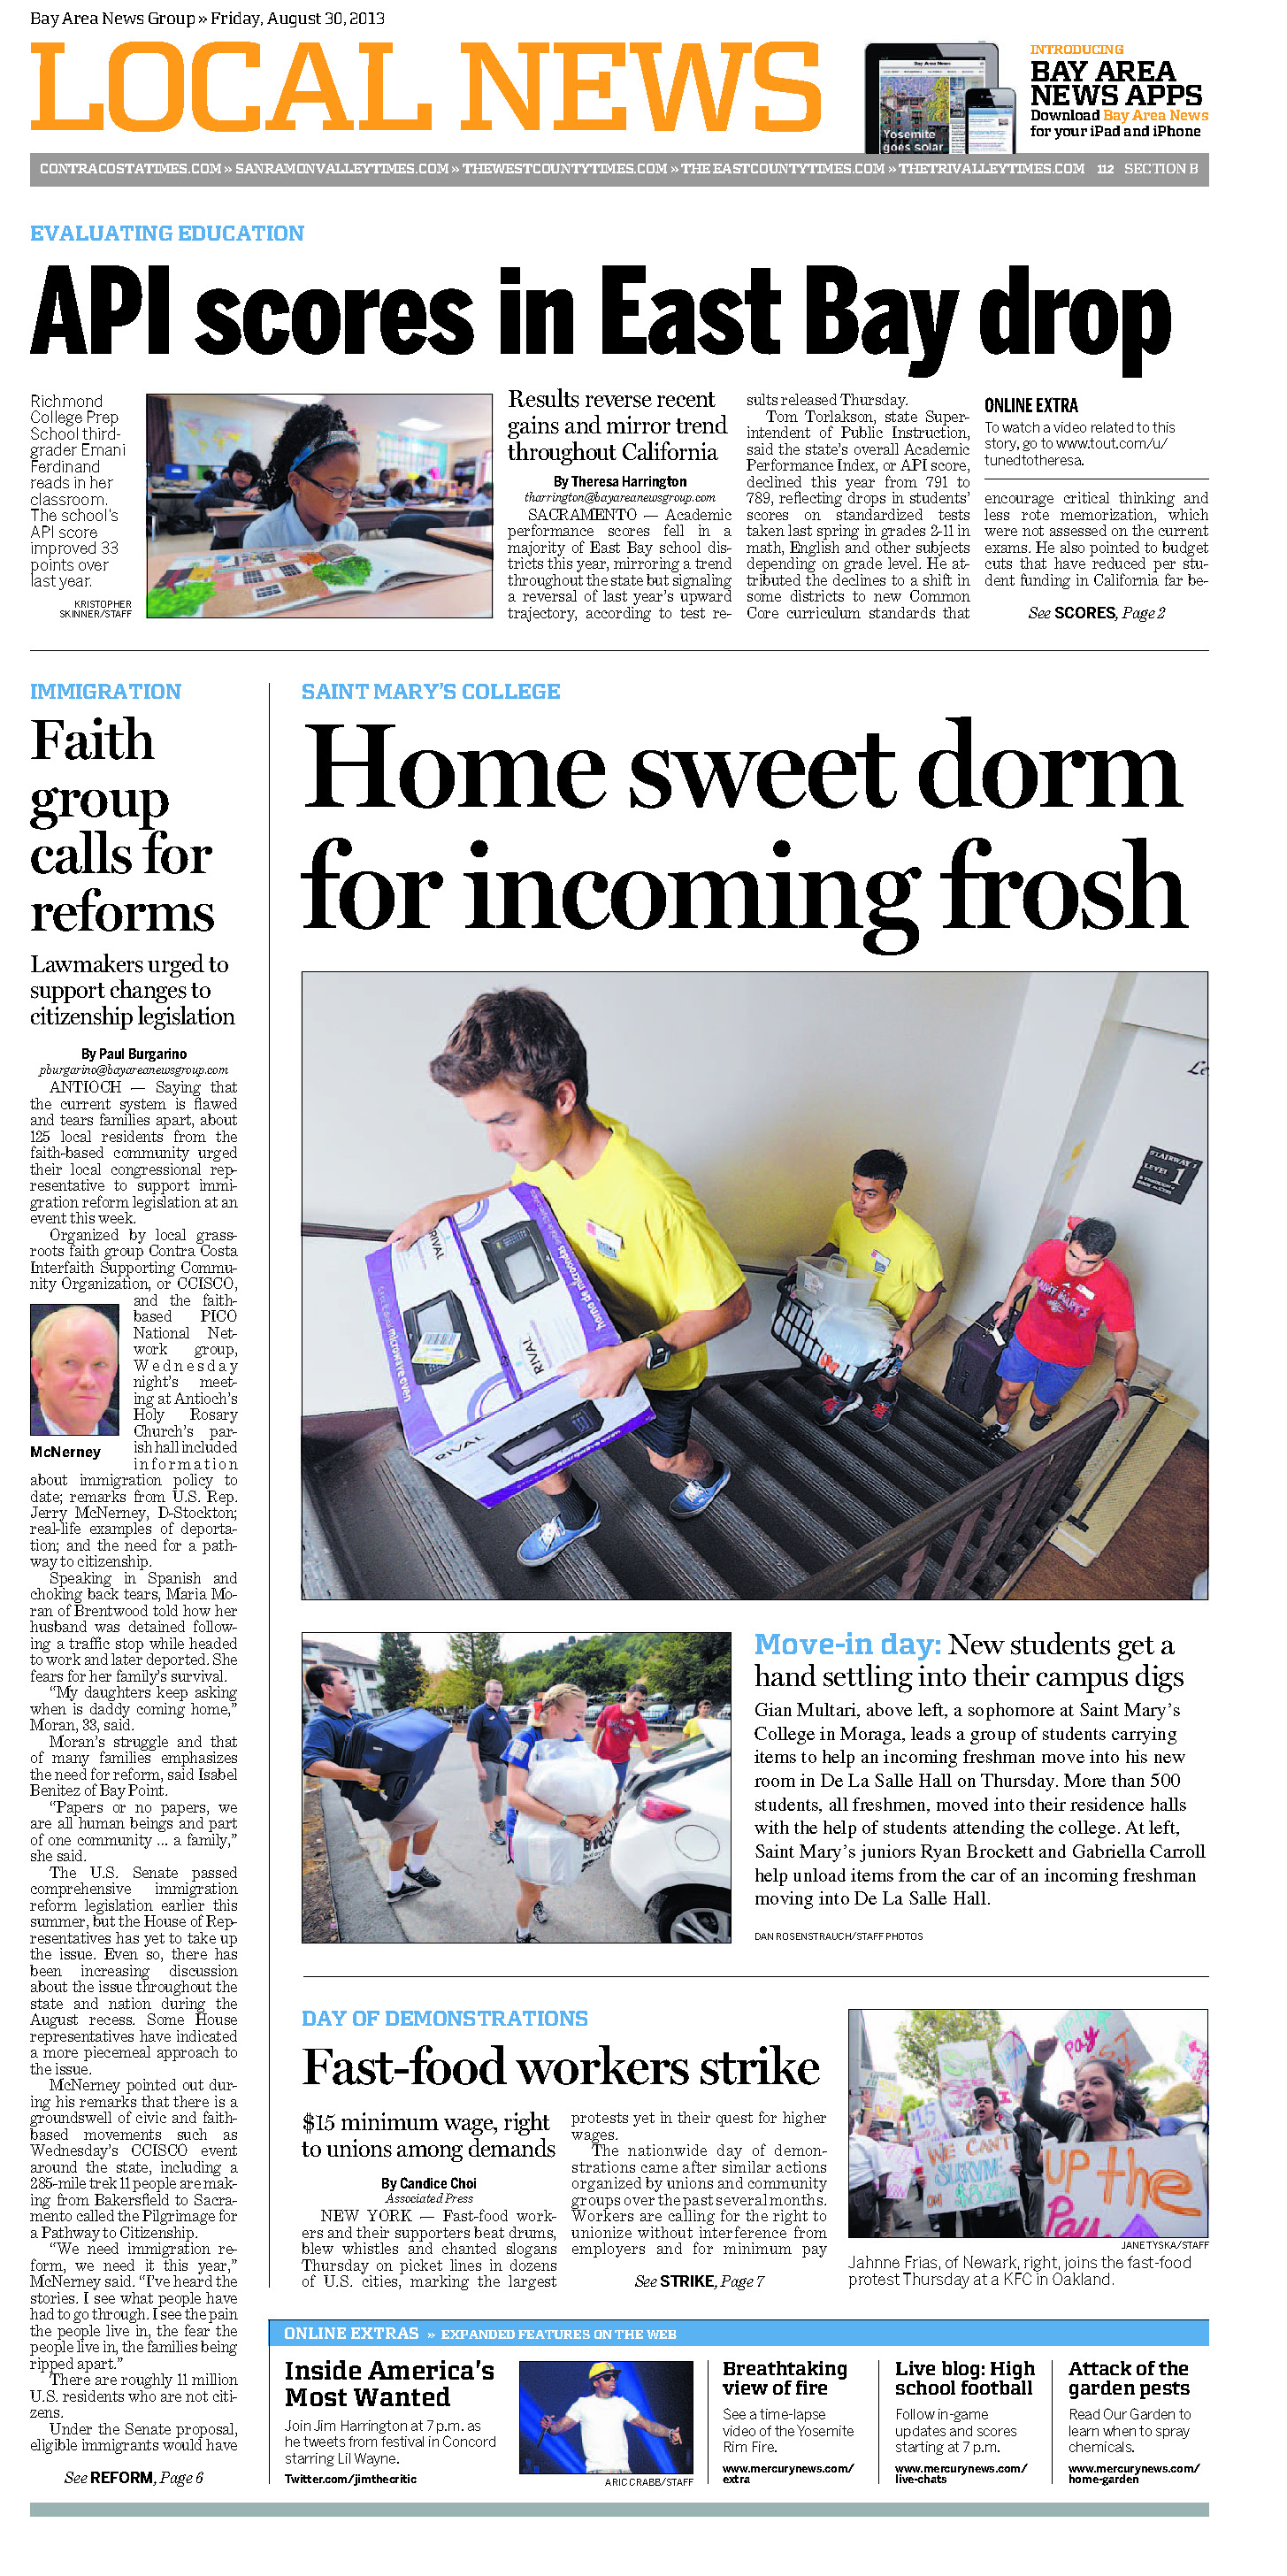 Page 1 of the Aug. 30, 2013 Contra Costa Times Local News page shows new SMC students moving in during the College's annual Weekend of Welcome.